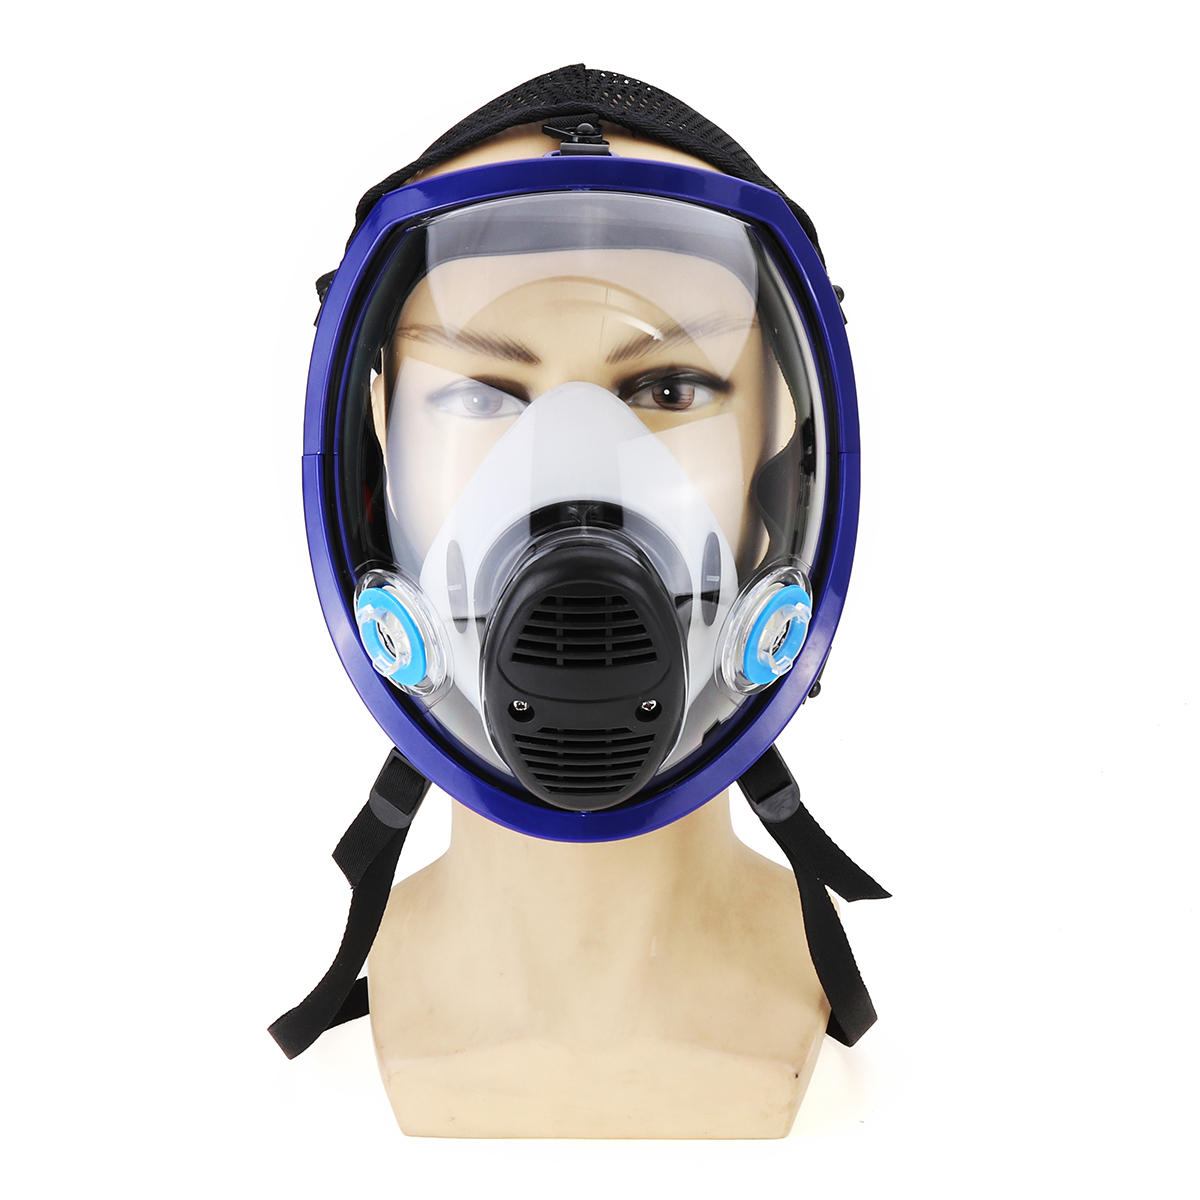 Careful Full Face Mask For 6800 Gas Mask Full Face Facepiece Respirator For Painting Spraying Free Shipping Party Masks Festive & Party Supplies